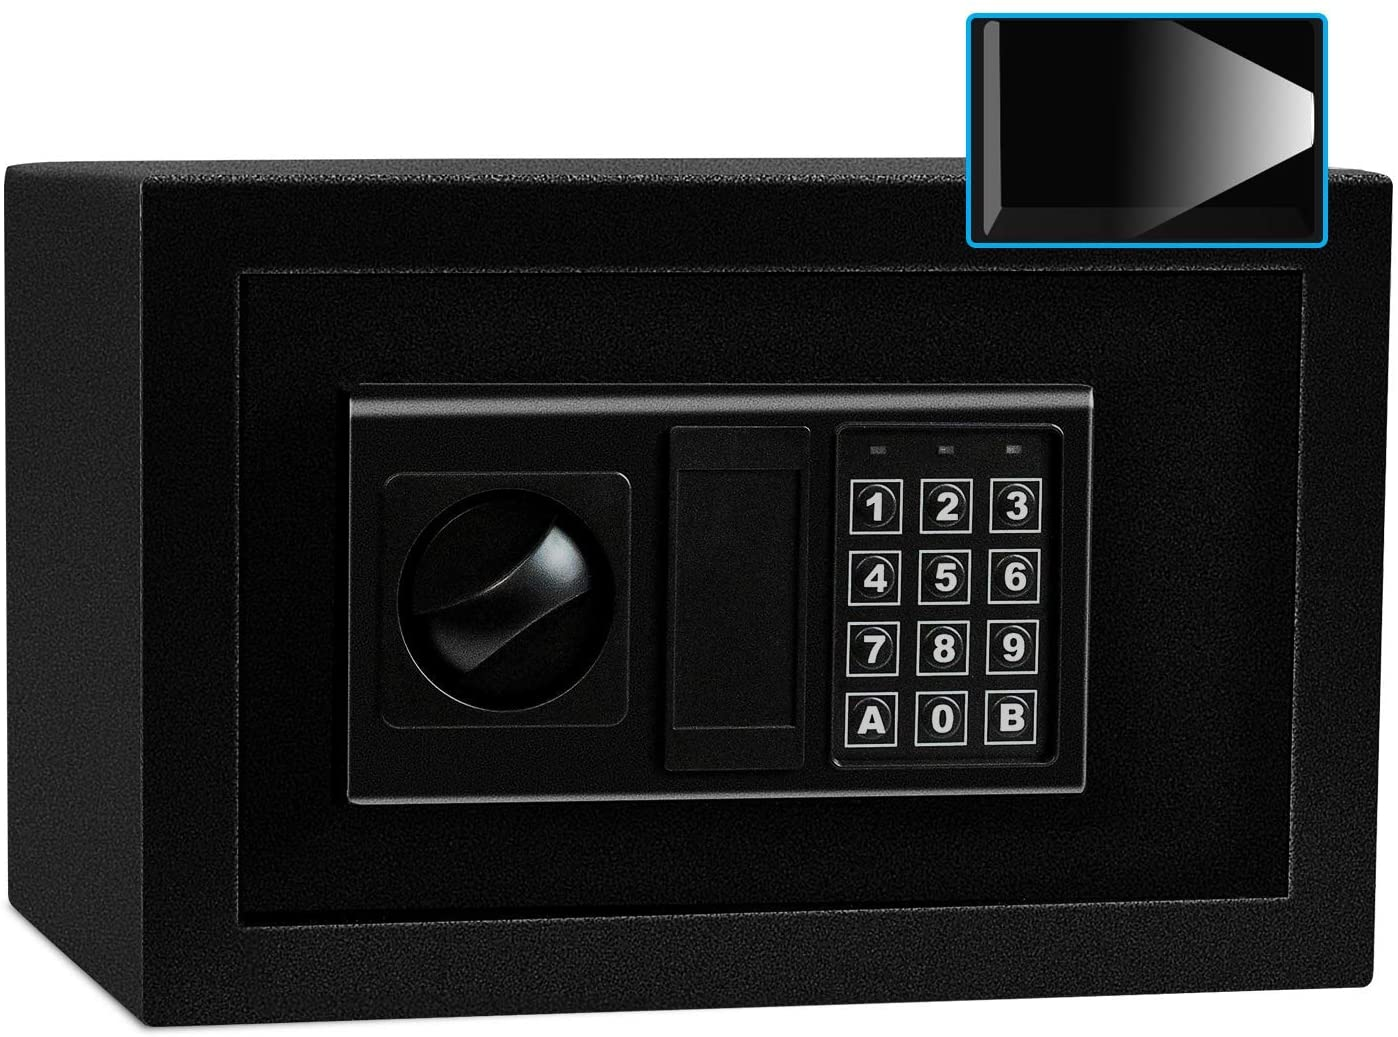 Sdstone Safe Box with Induction Light, Electronic Digital Safe with Keypad, Wall or Cabinet Anchoring Design -Protect Cash Money, Jewelry, Passports-for Home, Business or Travel,0.45 Cubic Feet